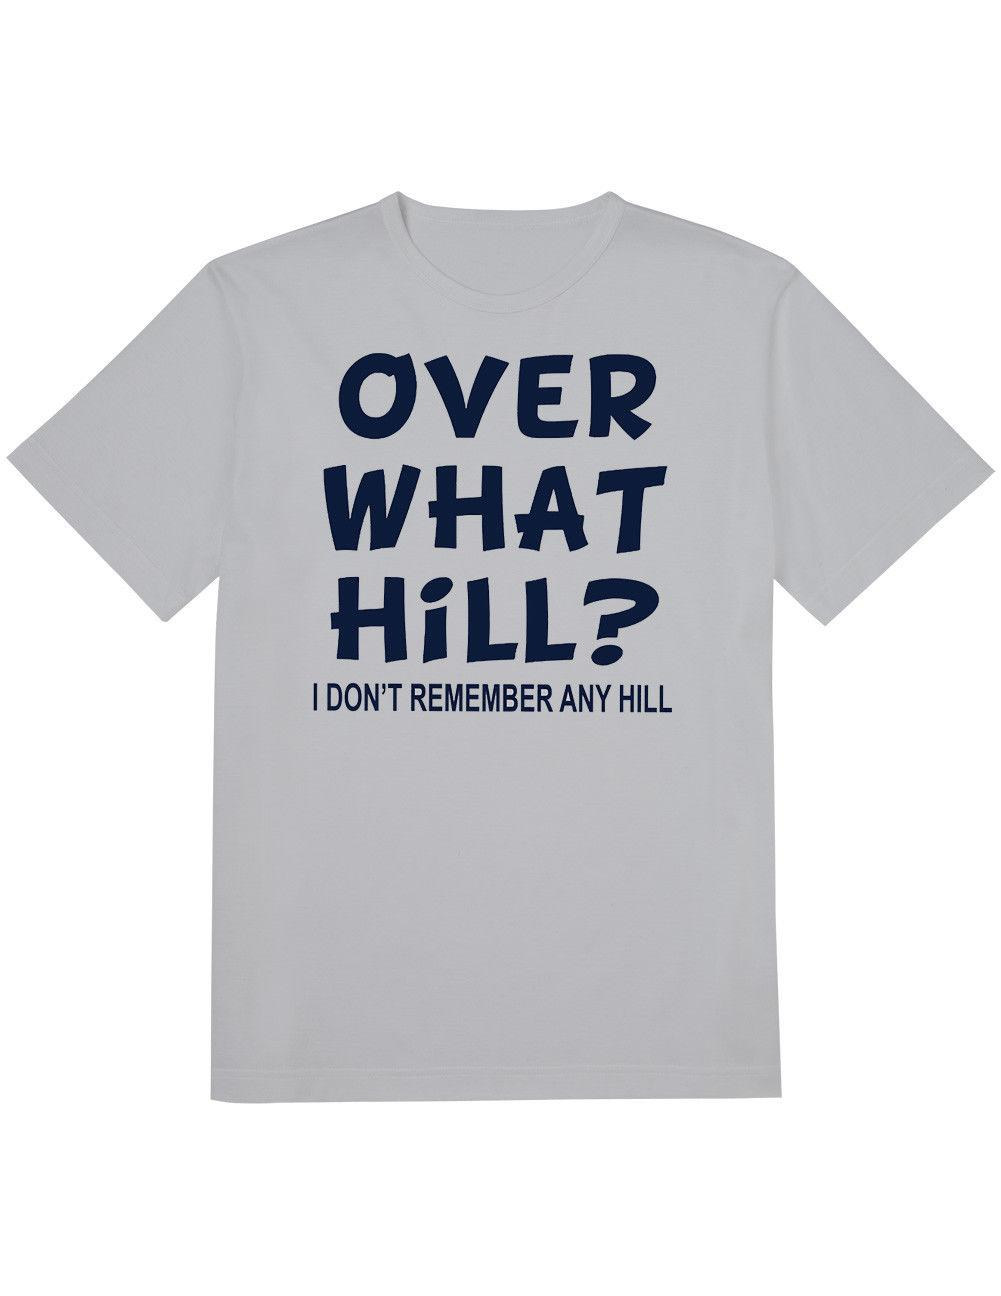 baeb125d93 NEW NWT Over What Hill? I Don't Remember Any Hill T-Shirt 2X size discout  hot new tshirt top free shipping t-shirt